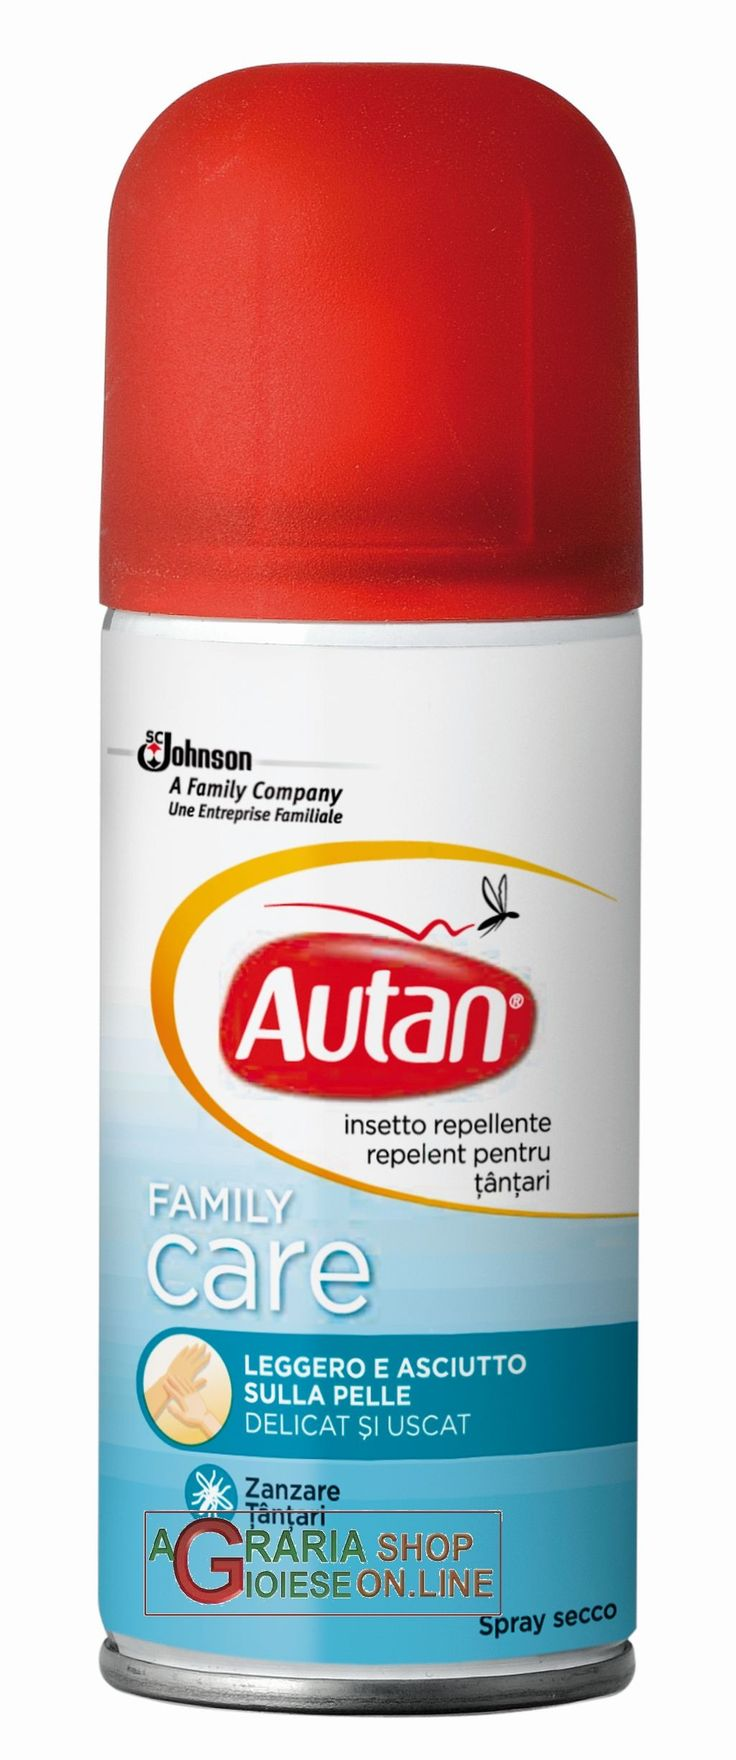 AUTAN FAMILY CARE REPELLENTE SPRAY ANTIZANZARE ML. 100 http://www.decariashop.it/cura-della-persona/758-autan-family-care-repellente-spray-antizanzare-ml-100.html